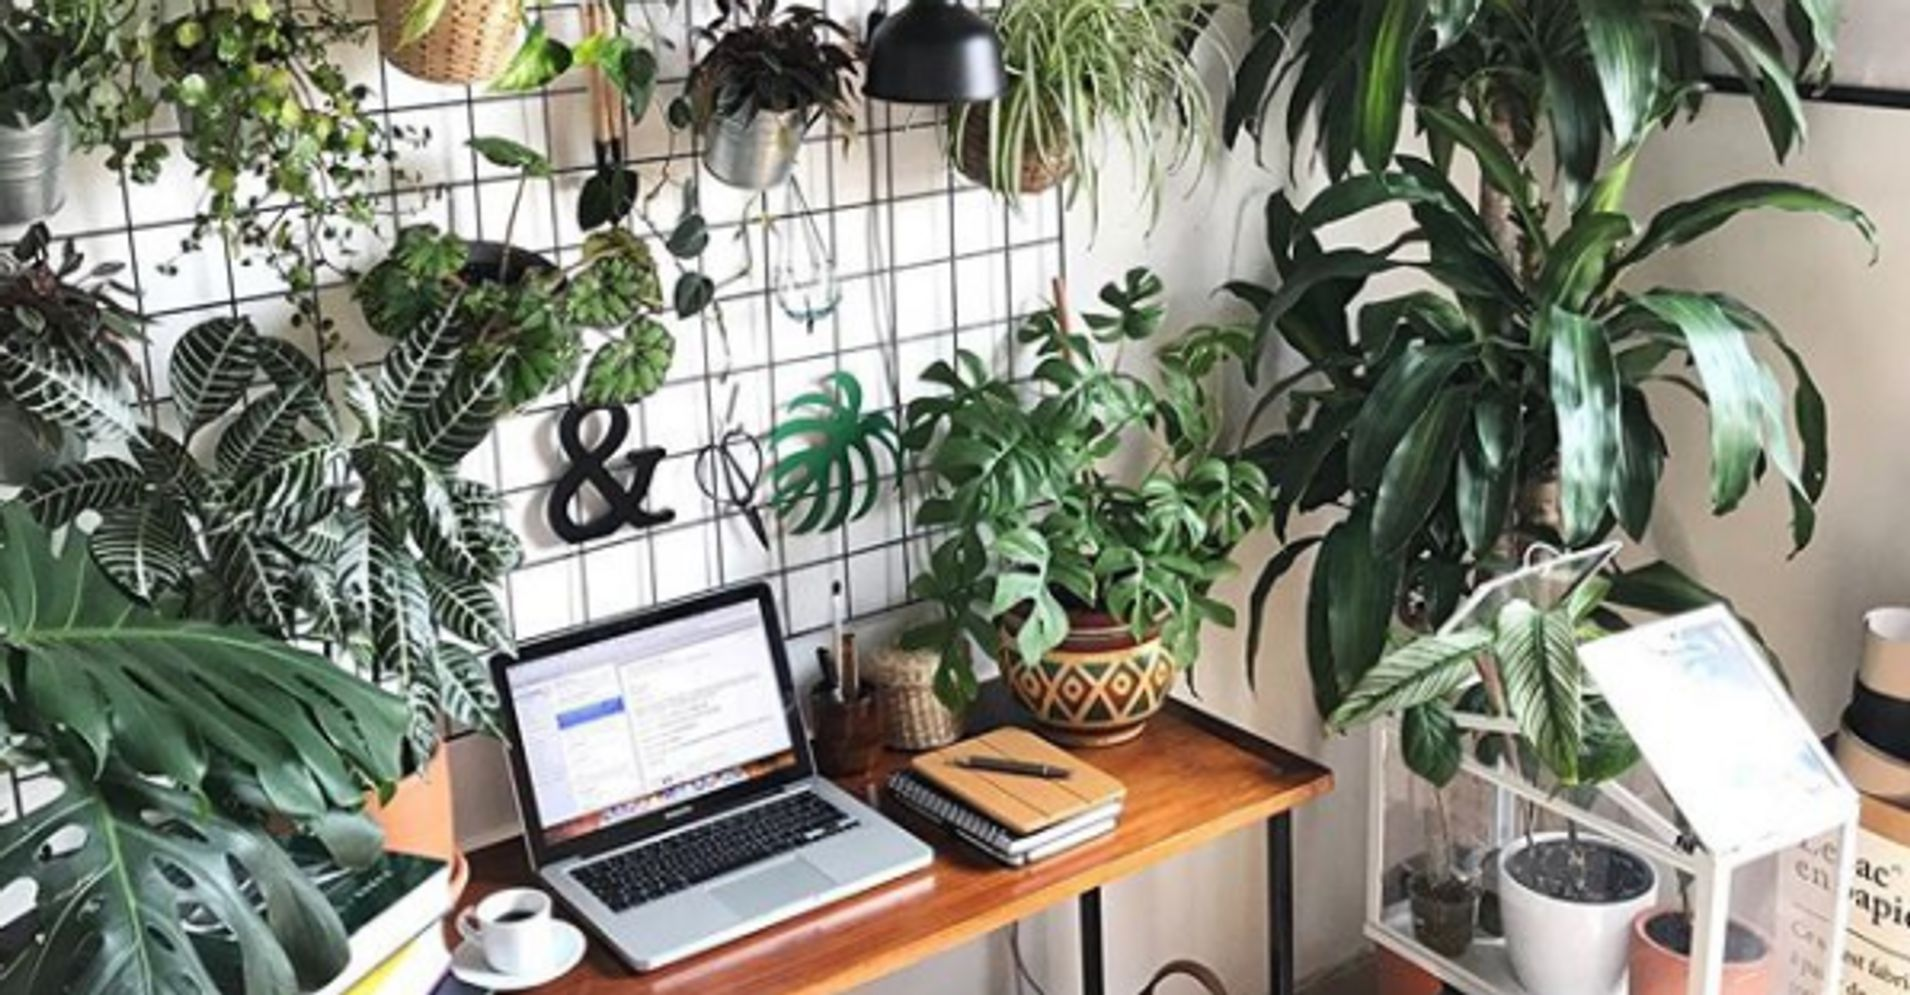 10 Creative Examples For Dividing Small Spaces: 10 Creative Hacks To Add Plants To Your Small Space